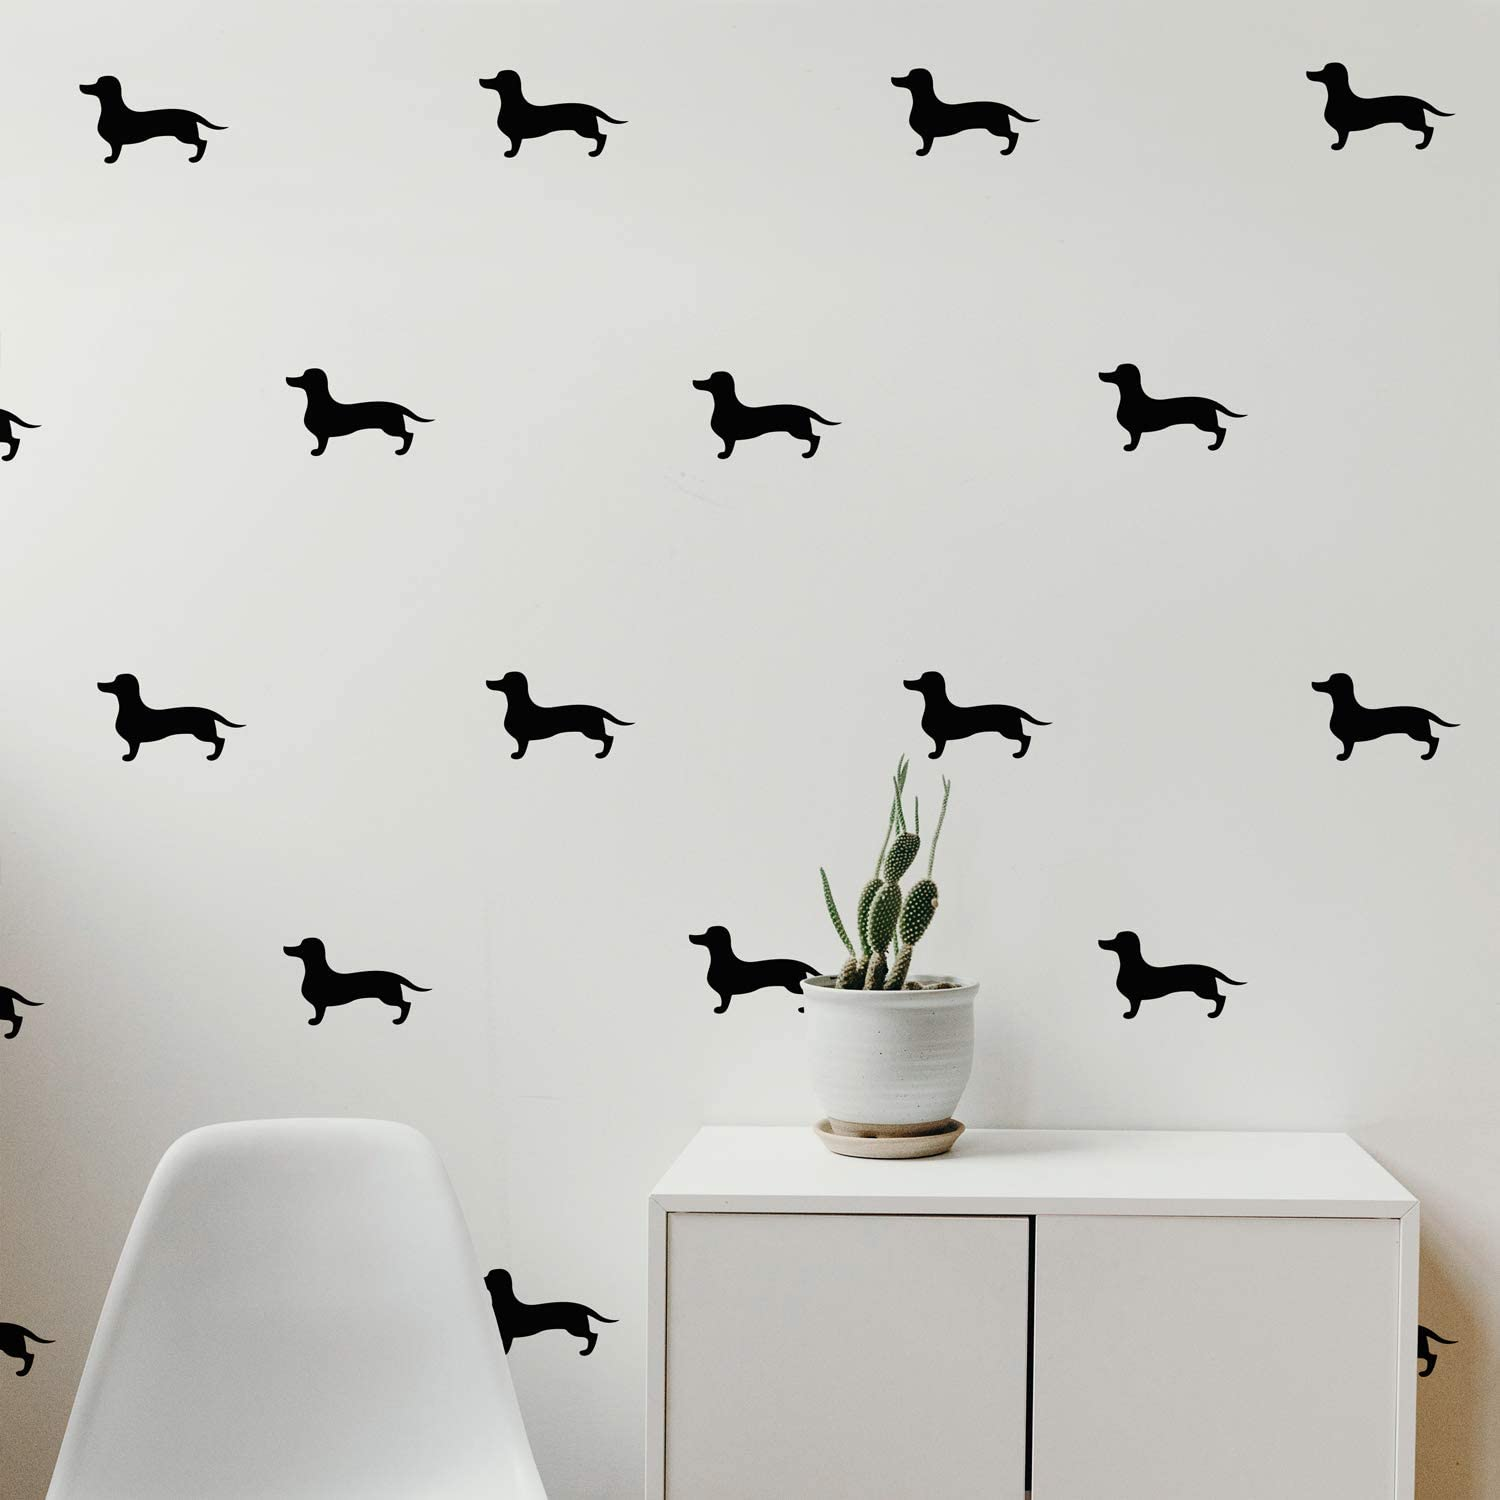 "Set of 12 Vinyl Wall Art Decals - Dachshund Dogs - 3.5"" x 6"" Each - Cool Fun Trendy Cute Wiener Dog Sticker Design for Baby Kids Room Bedroom Playroom School Classroom Nursery Decor"